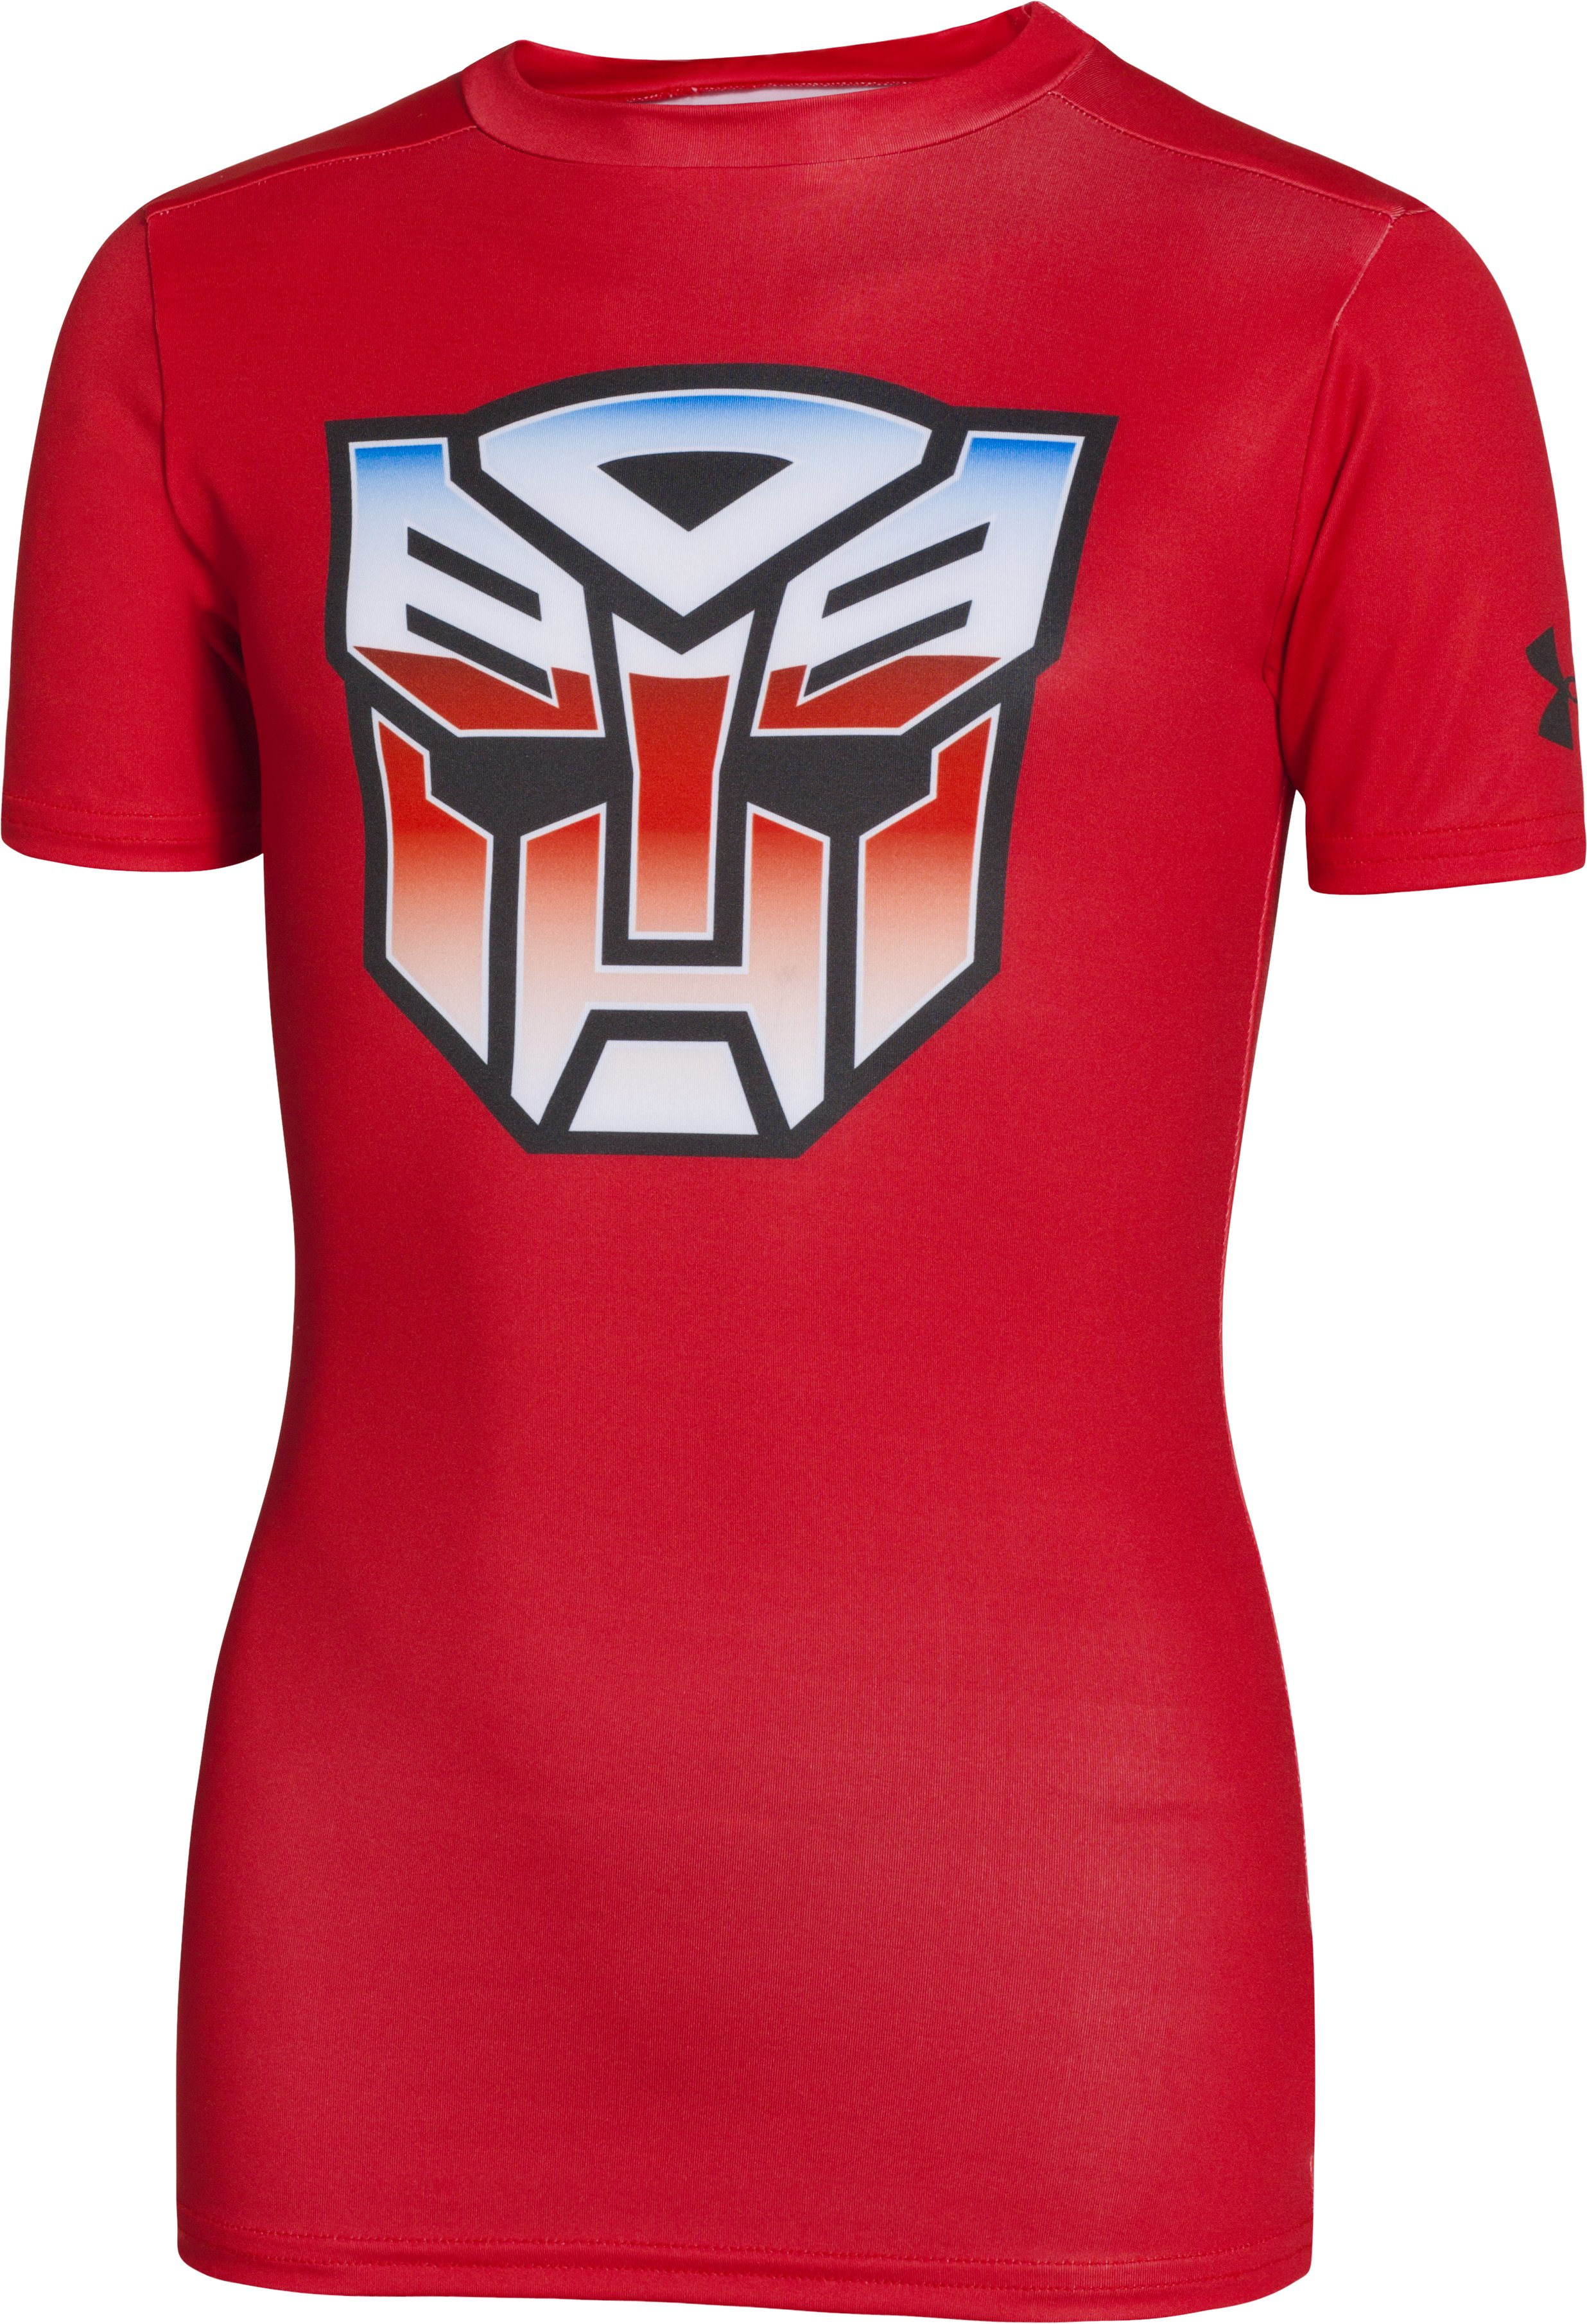 Boys' Under Armour® Alter Ego Transformers Autobots Fitted Shirt, Red